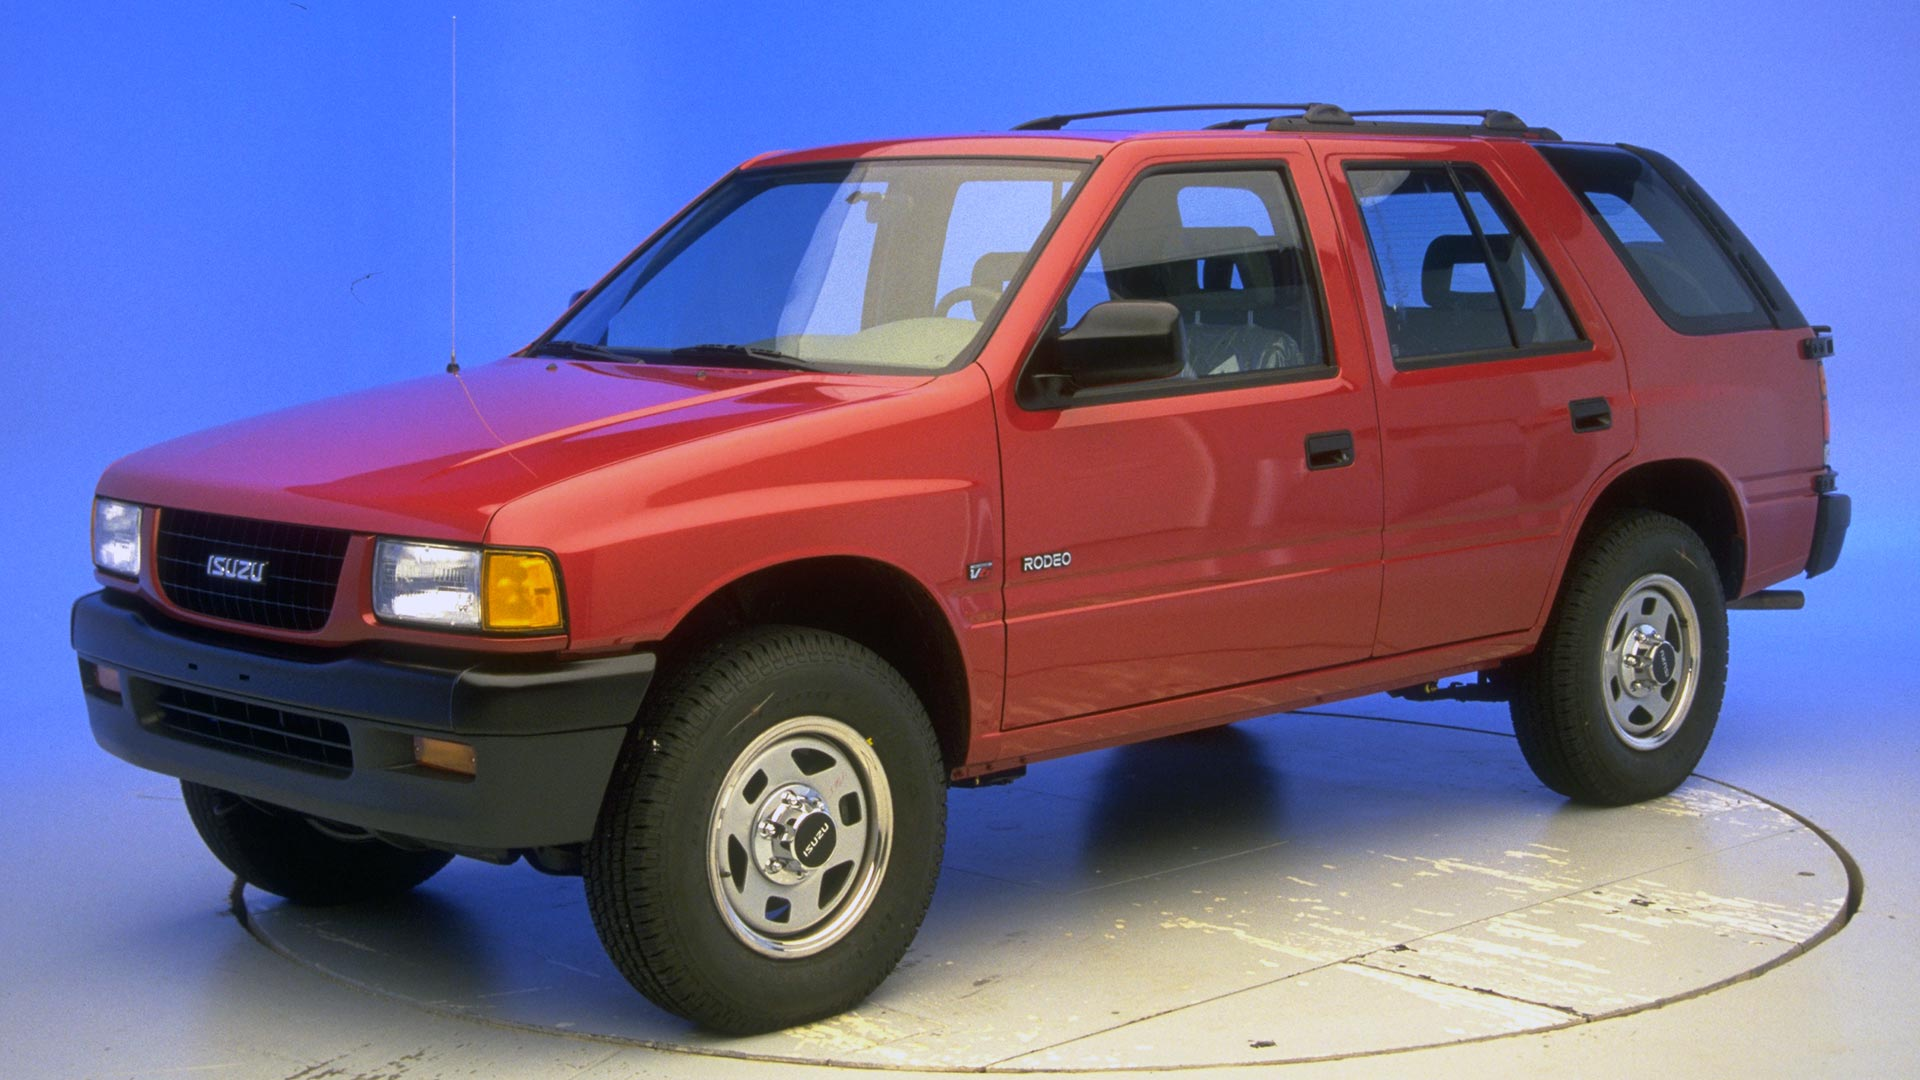 1996 Isuzu Rodeo 4-door SUV